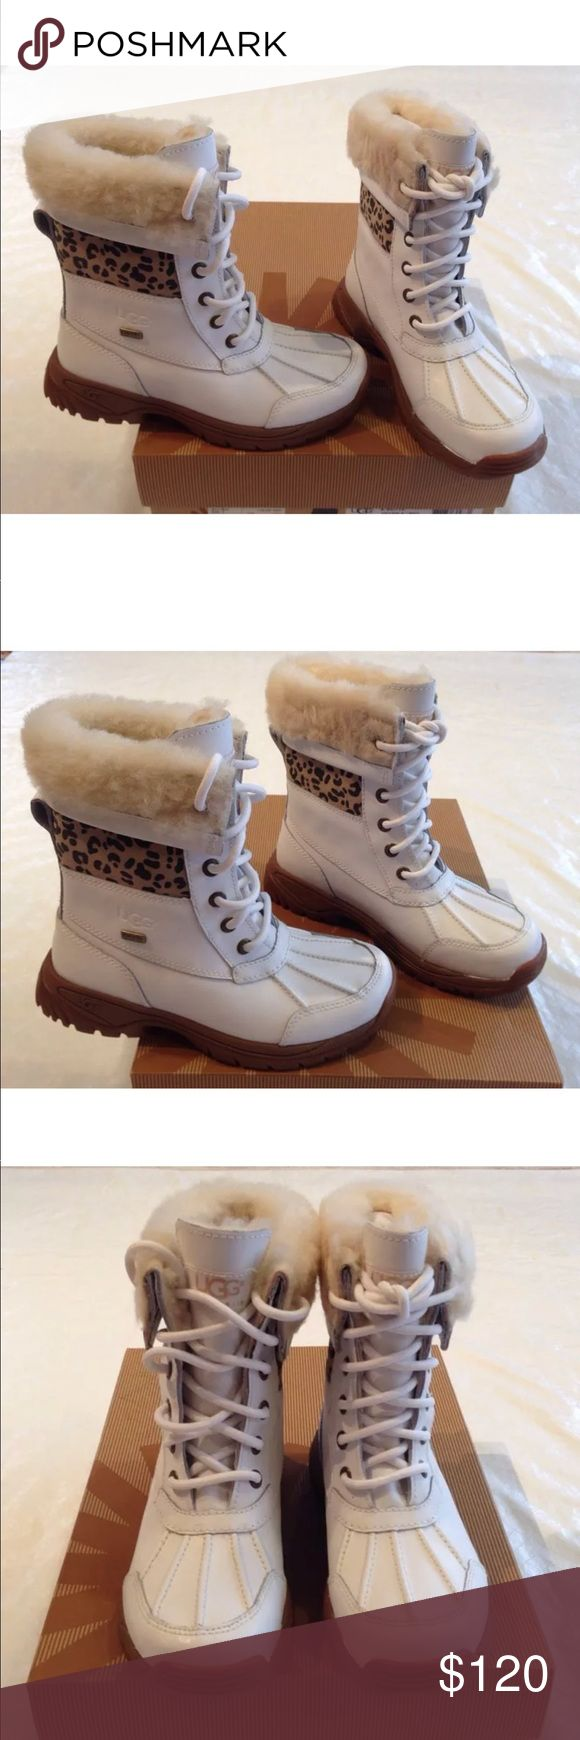 """UGG Australia**White Fur-lined Boots**US 1**$170 UGG Australia- K Butte. Style #1001936 K/ WHT. White leather fur- lined lace up Uggs. Beautiful and very stylish for your little girl, while she will be safe with the thick rubber sole, and warm with the fur lined boots. Boots are waterproof.  Boots are made with """"event"""" waterproof fabric. Great for -20 degrees Celsius's, says on the box. Vibram rubber soles, which are the best soles!!! USA 1; UK 13; EU 31; JAPAN 190 Retails for $190 + Tax…"""